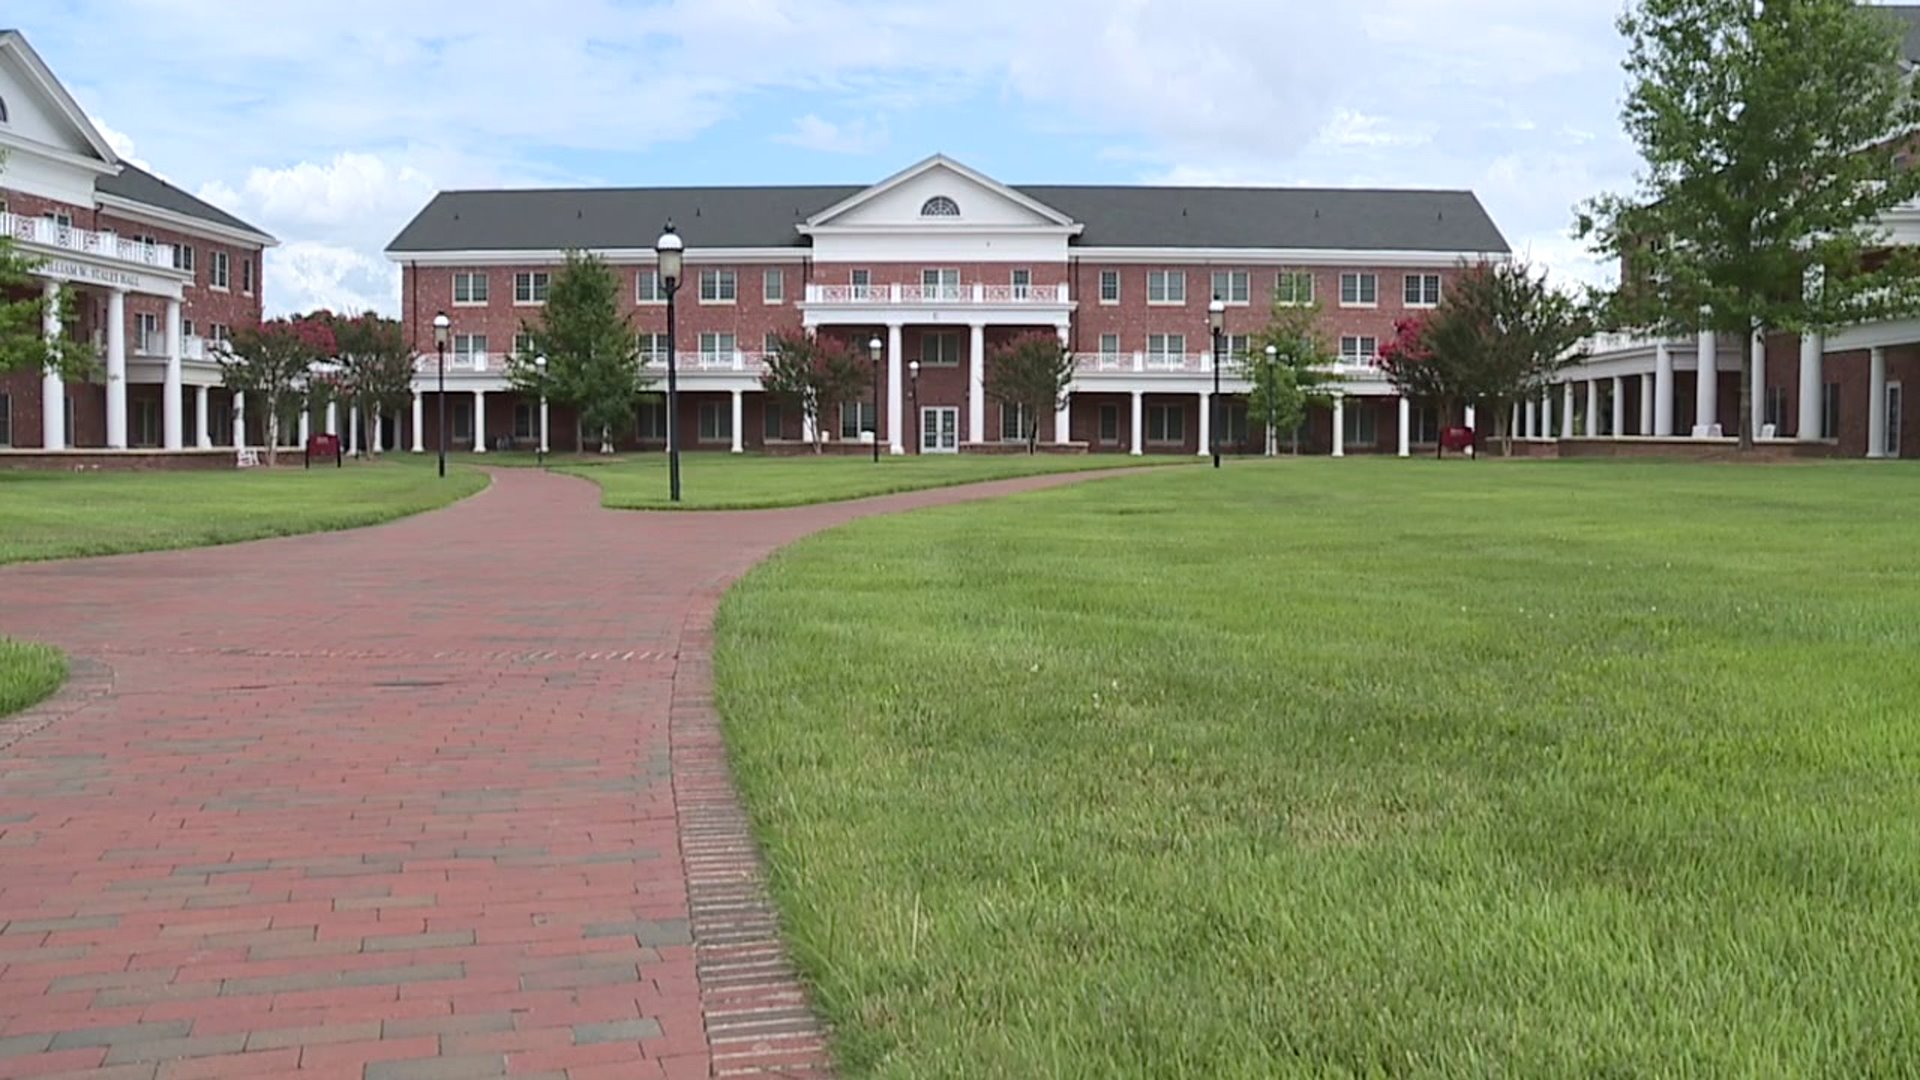 William Harper's name removed from Elon University residence hall over ties to racism